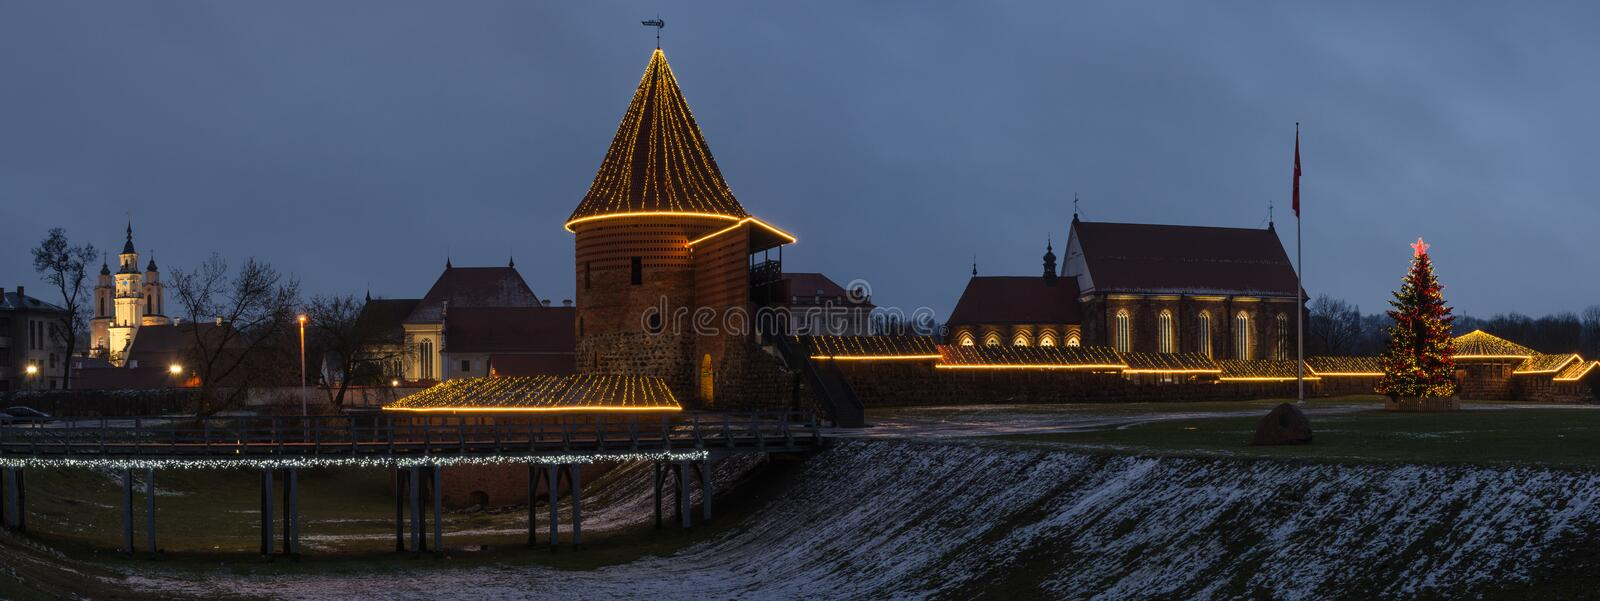 Kaunas castle in Christmas night view panorama. Panoramic view of Old castle and St. George church in Christmas time illuminated with lights, Kaunas, Lithuania royalty free stock photography